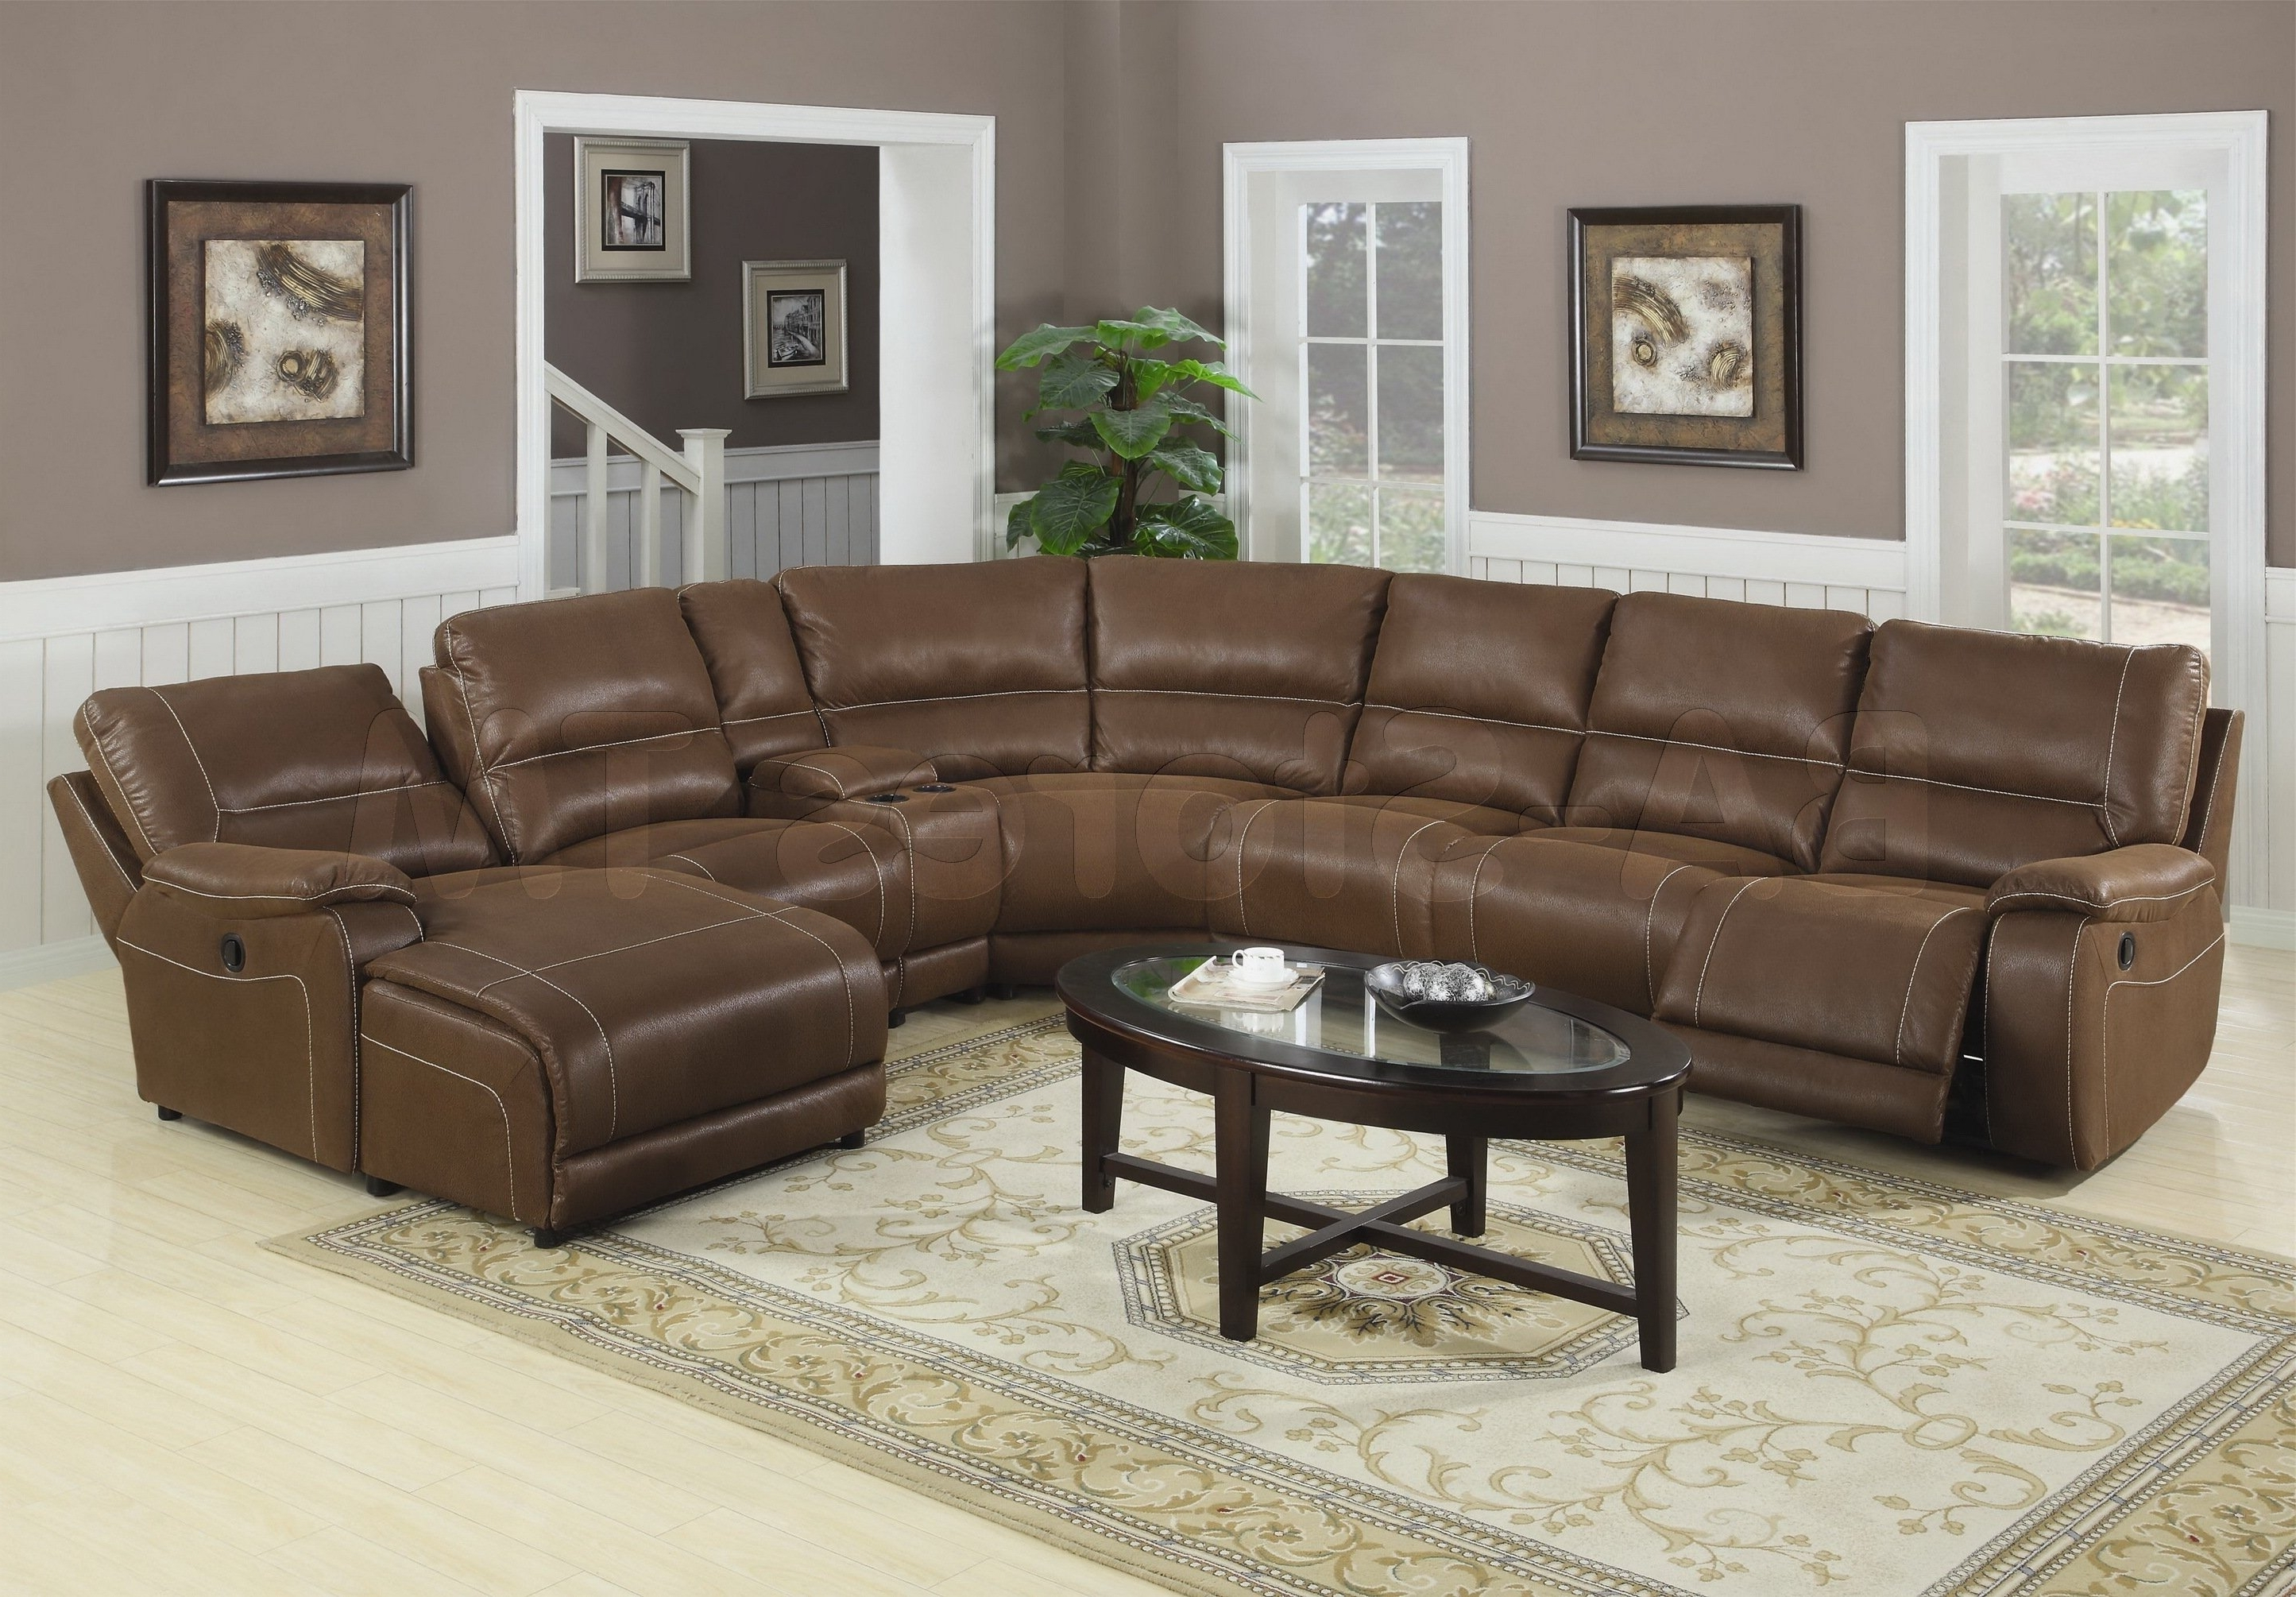 Most Recently Released Interior Luxury Oversized Sectional Sofa For Awesome Living Room Throughout Luxury Sectional Sofas (View 13 of 15)